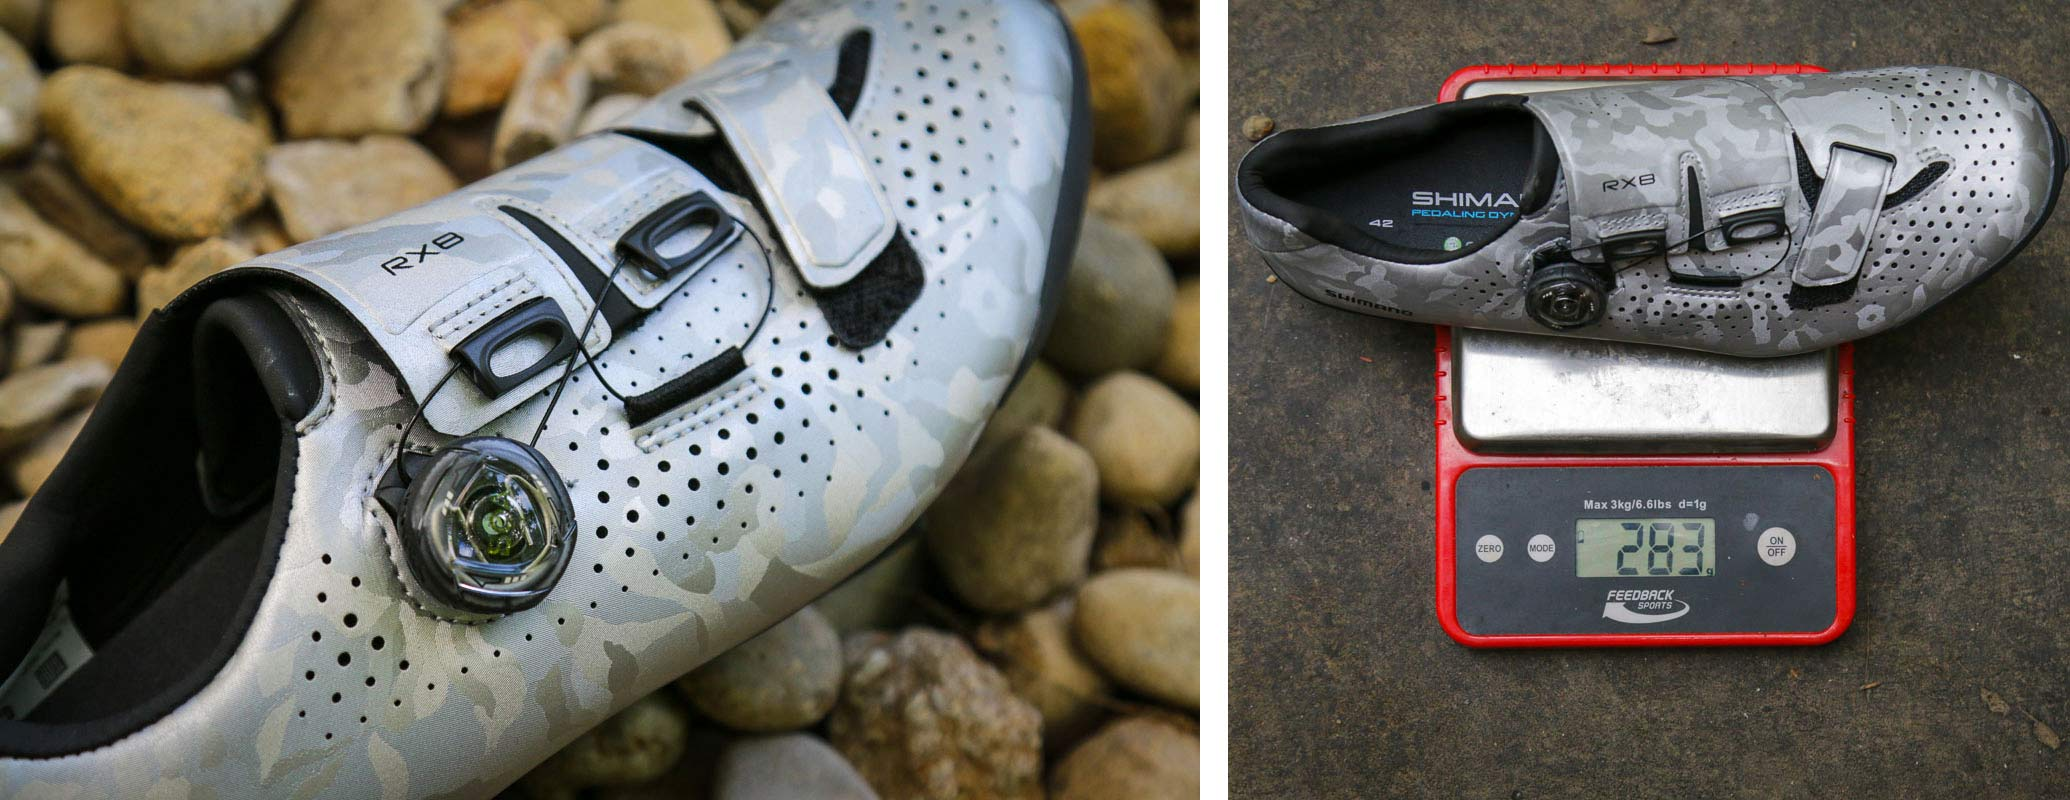 shimano rx8 gravel bike shoes review and actual weight on the scale